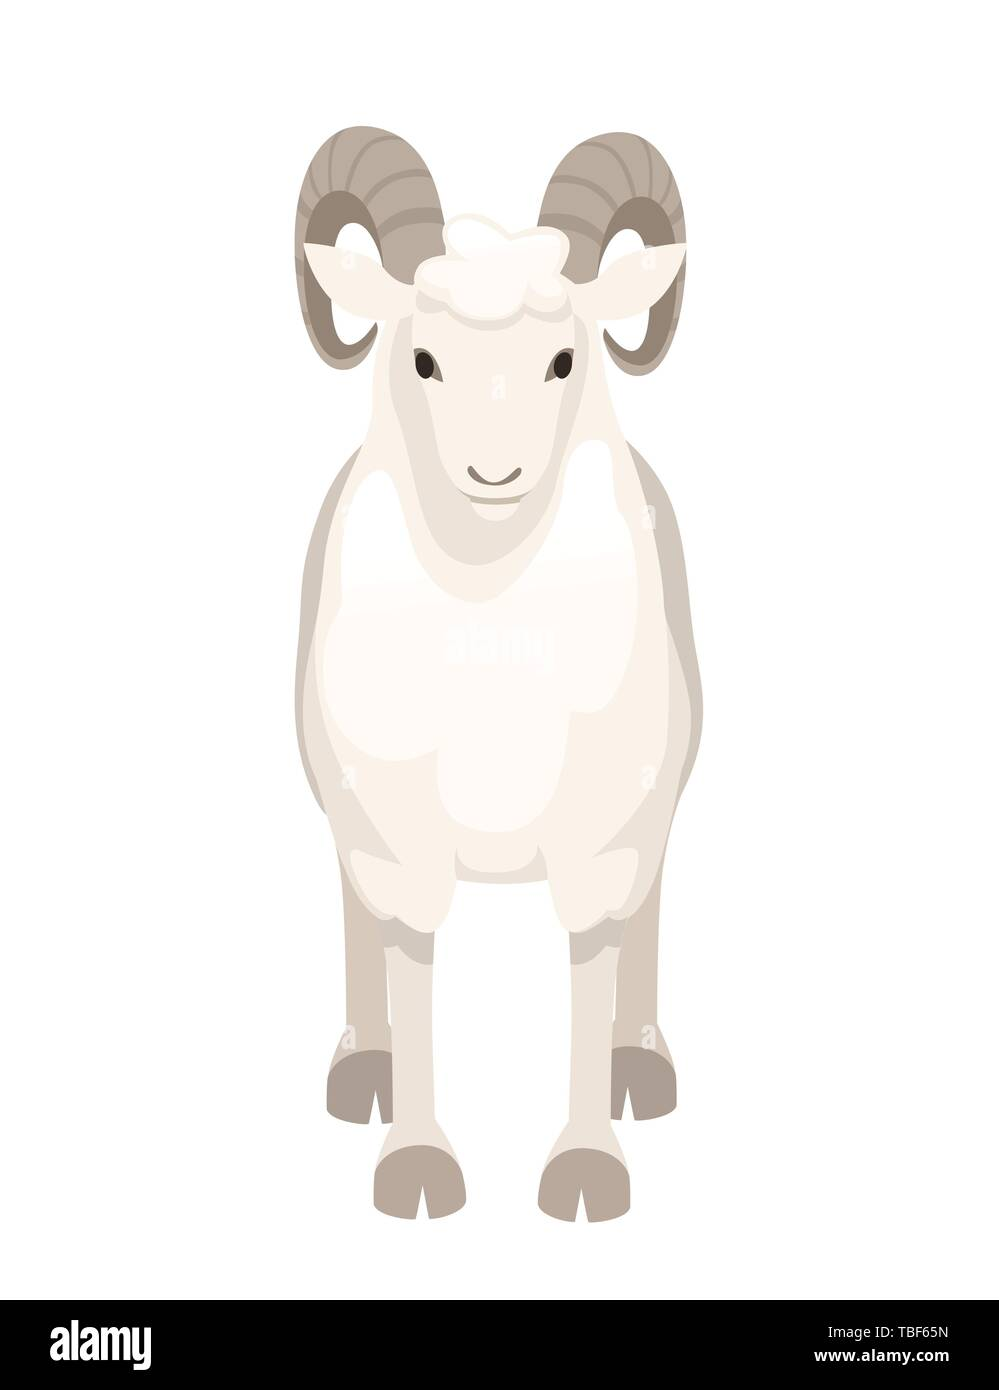 5b2a04f4c White horned mountain ram sheep cartoon character design flat vector animal  illustration isolated on white background